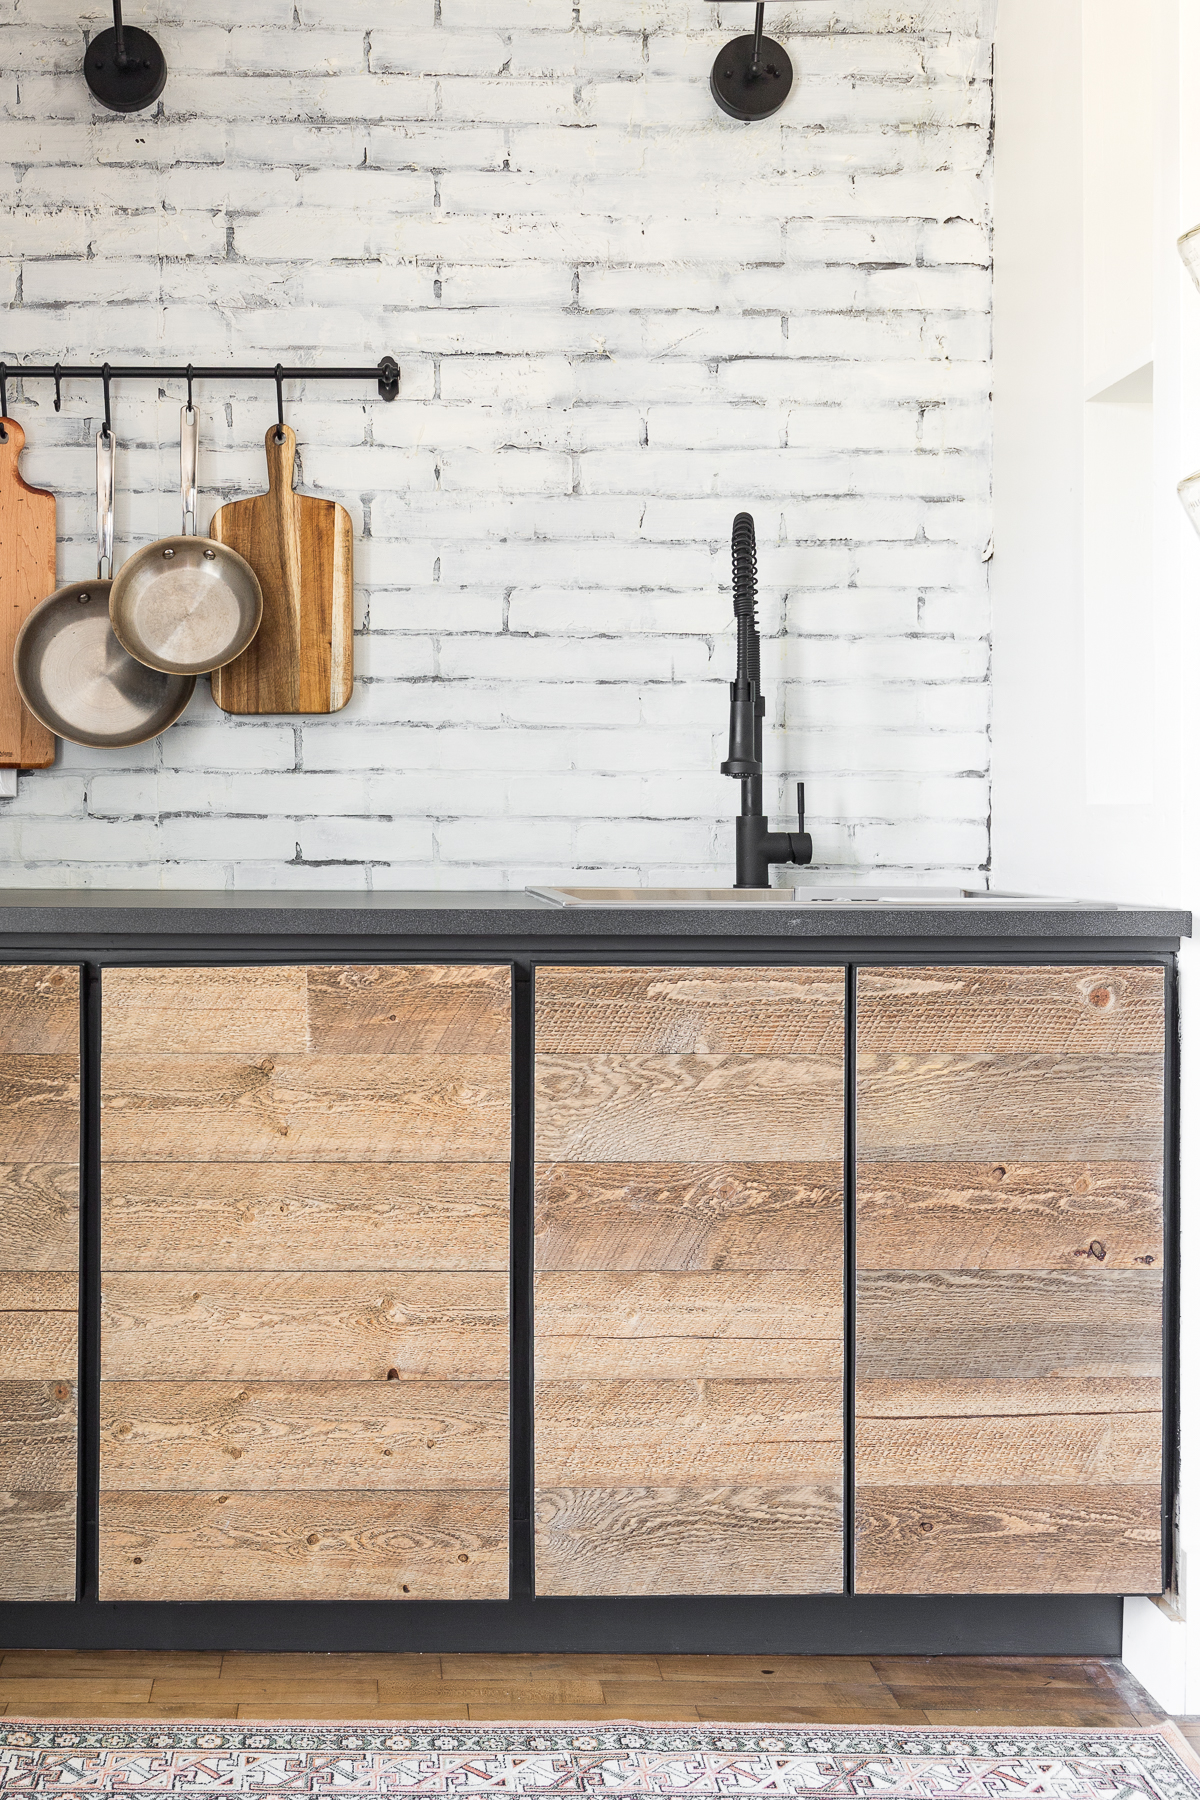 2x4 Kitchen Cabinets : kitchen, cabinets, Rustic, Industrial, Cabinet, Doors, Tutorial, Cherished, Bliss